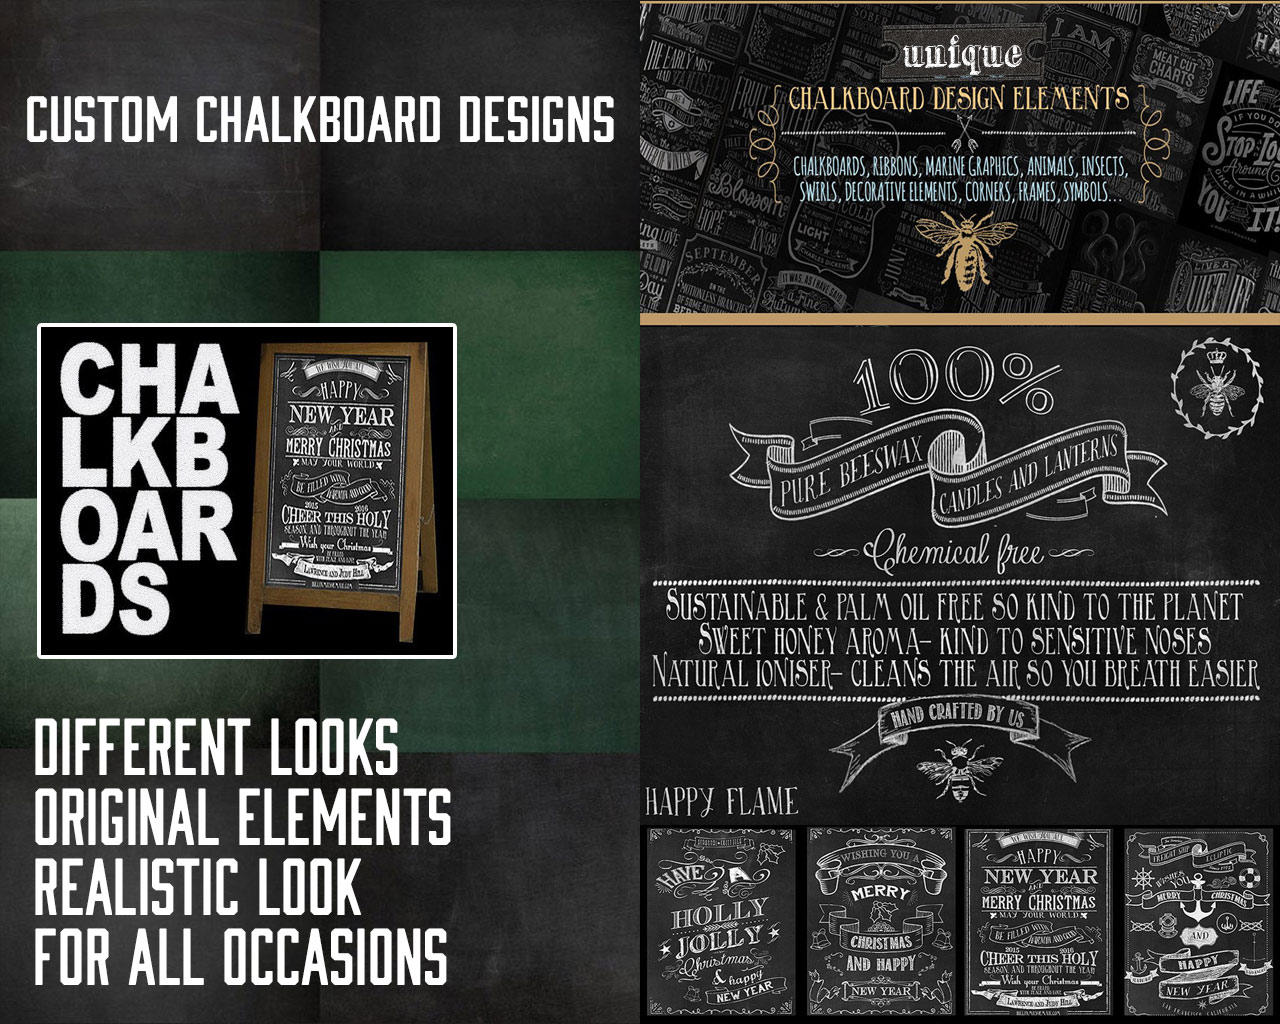 Realistic Chalkboard Design for all Occasions, in all Sizes by scarab13 - 110190